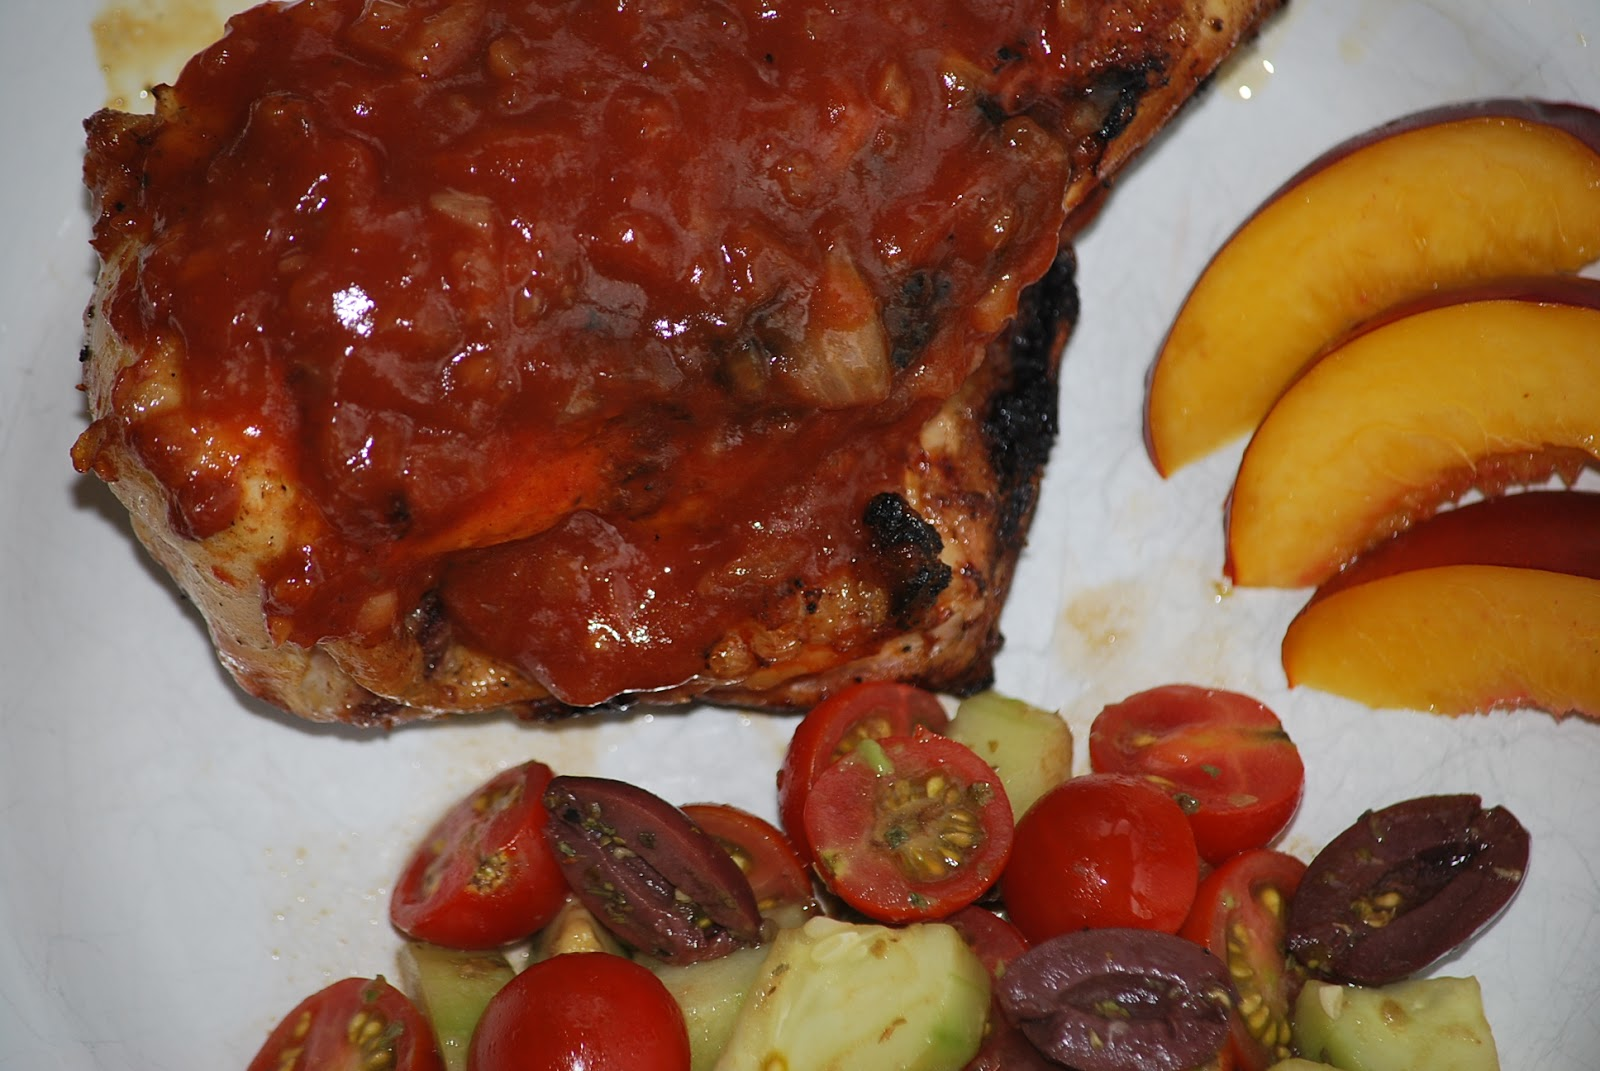 ... served my BBQ chicken with a fresh tomato salad and nectarine slices